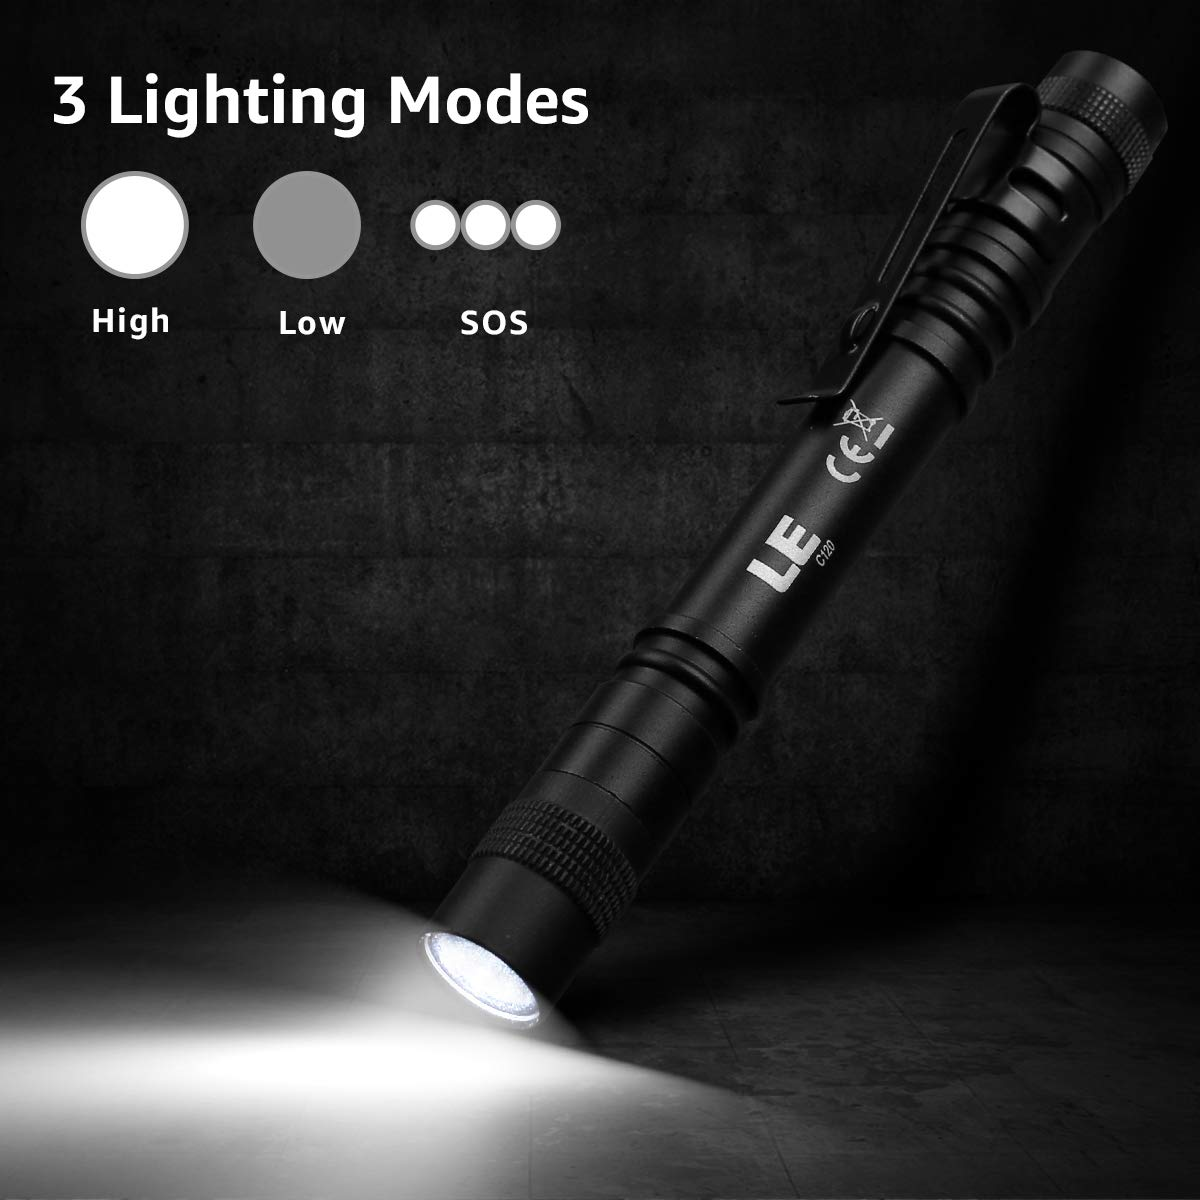 LE LED Pocket Pen Light Flashlight Small Pack of 2 Repair Mini Work Perfect Flashlights for Inspection Stylus PenLight with Clip